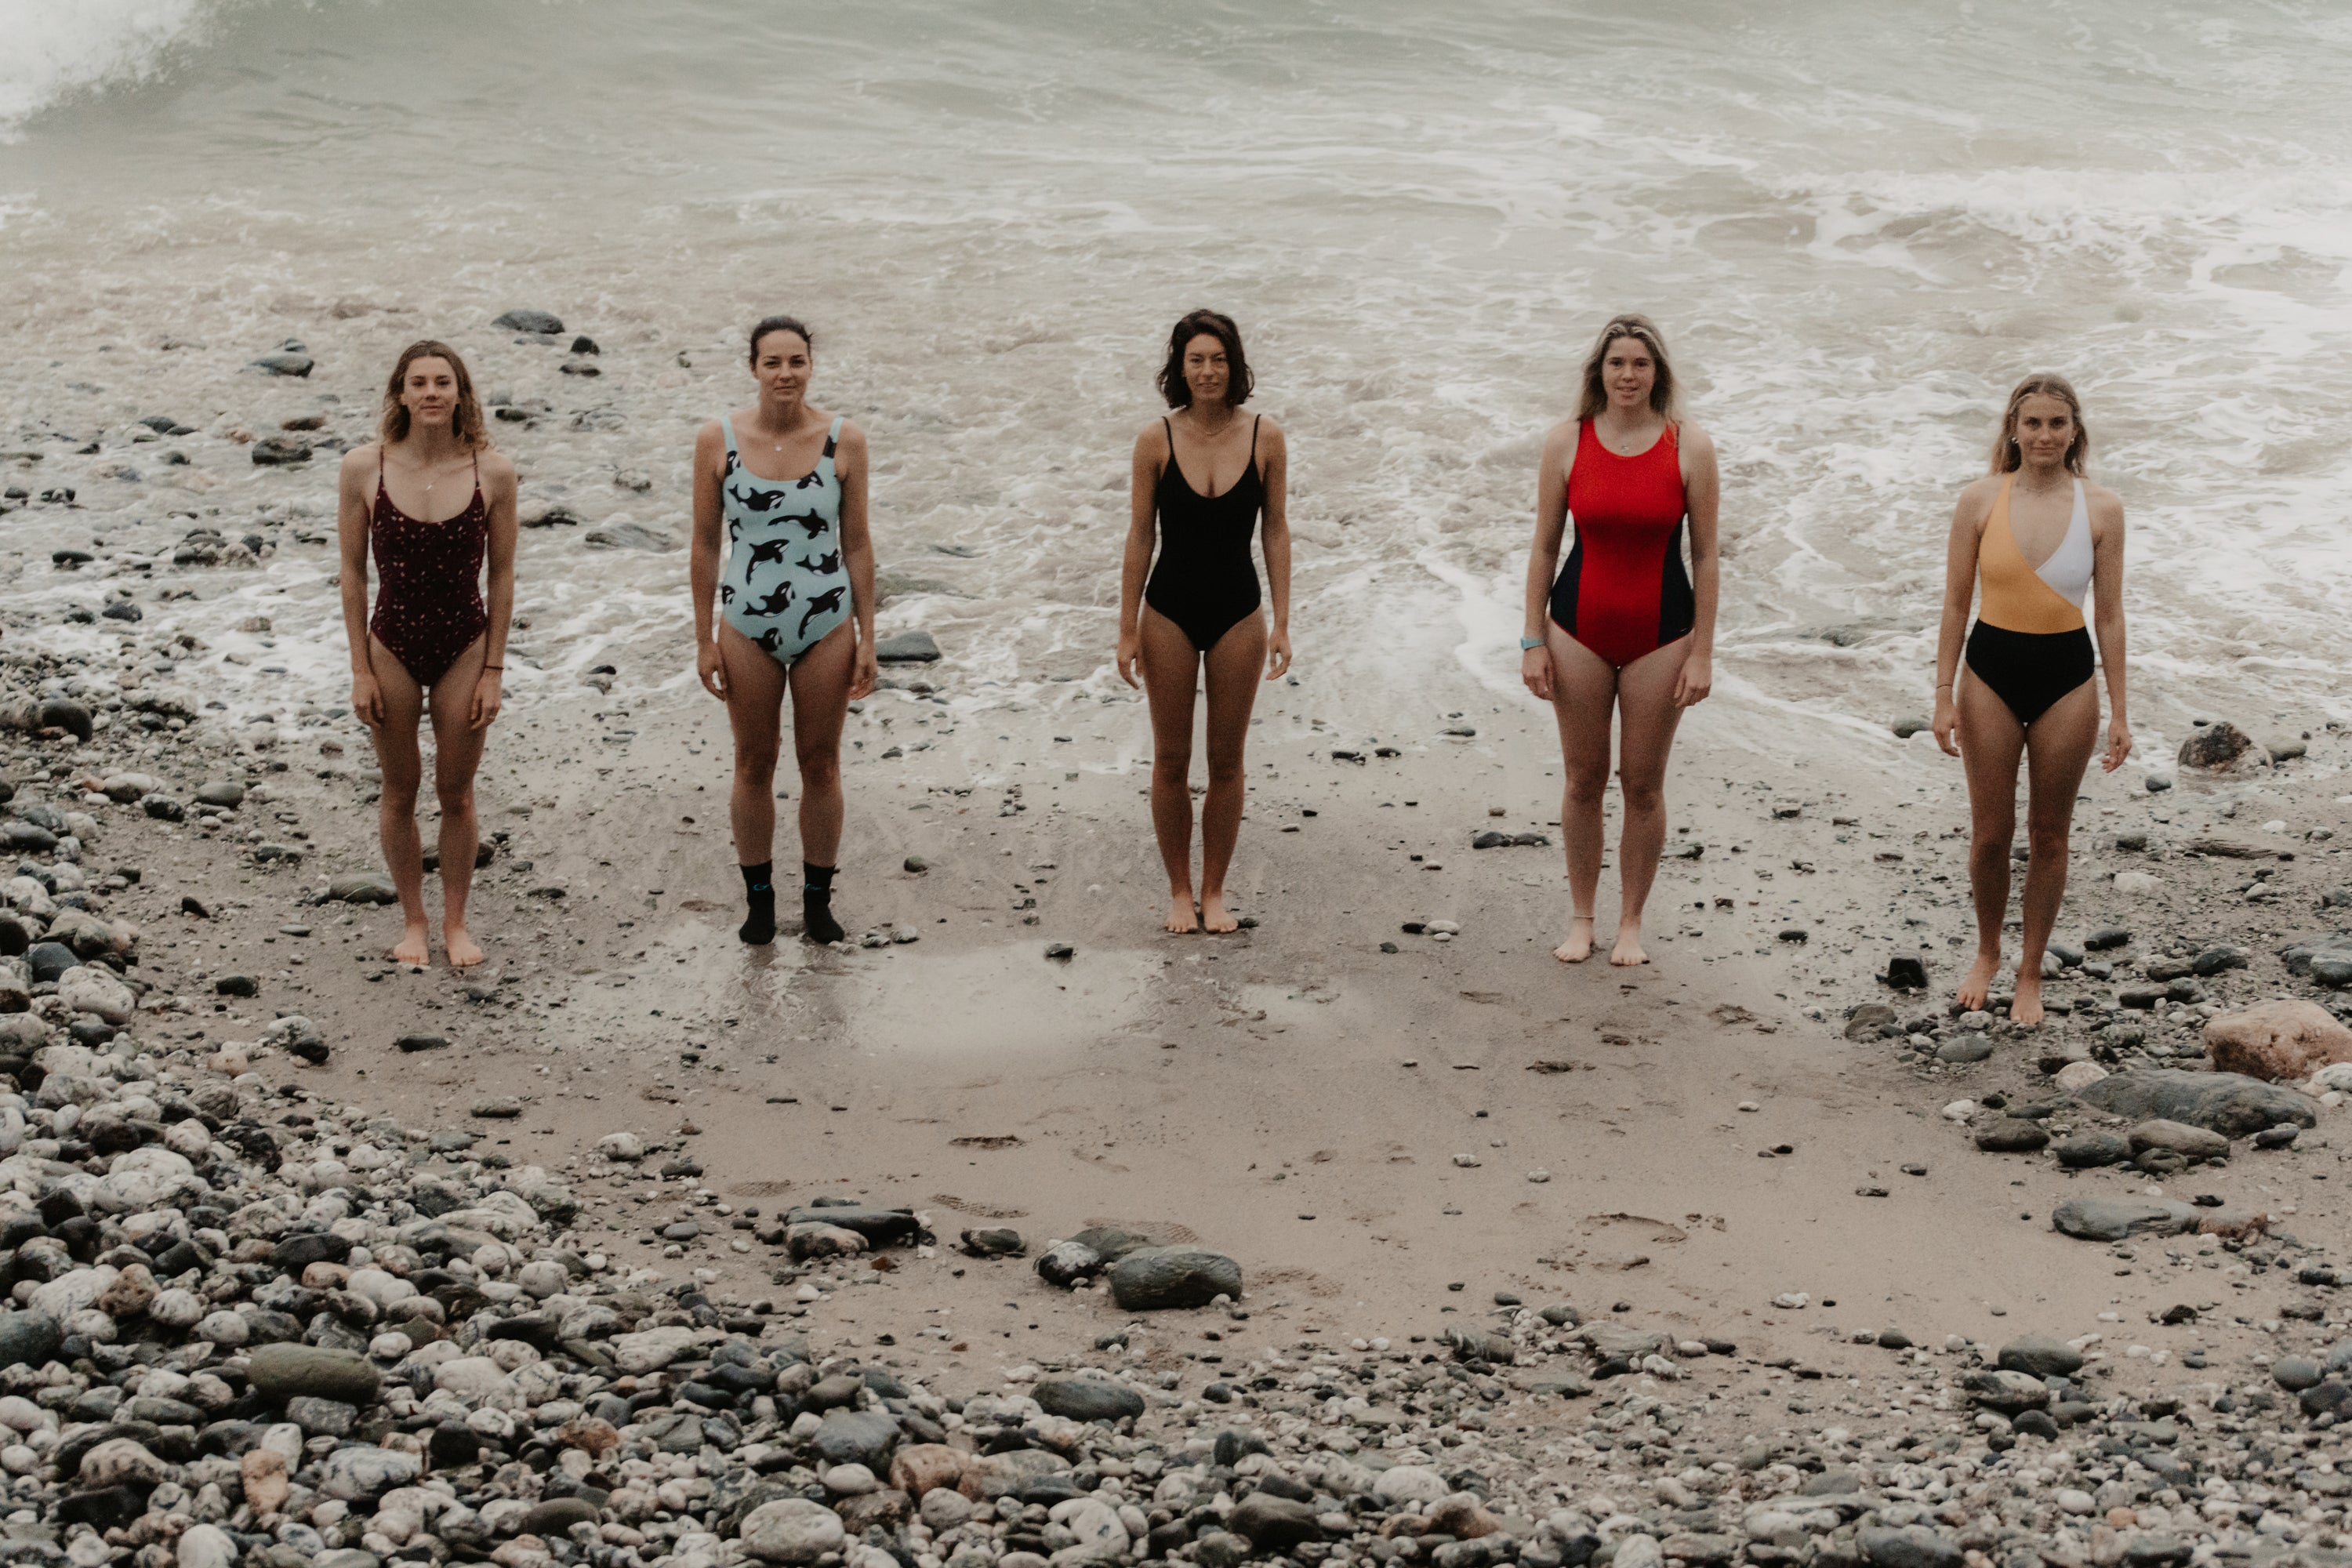 Keri-anne Payne, Lucy Campbell, Grace Kingswell and Anna Blackwell in swimsuits by the sea